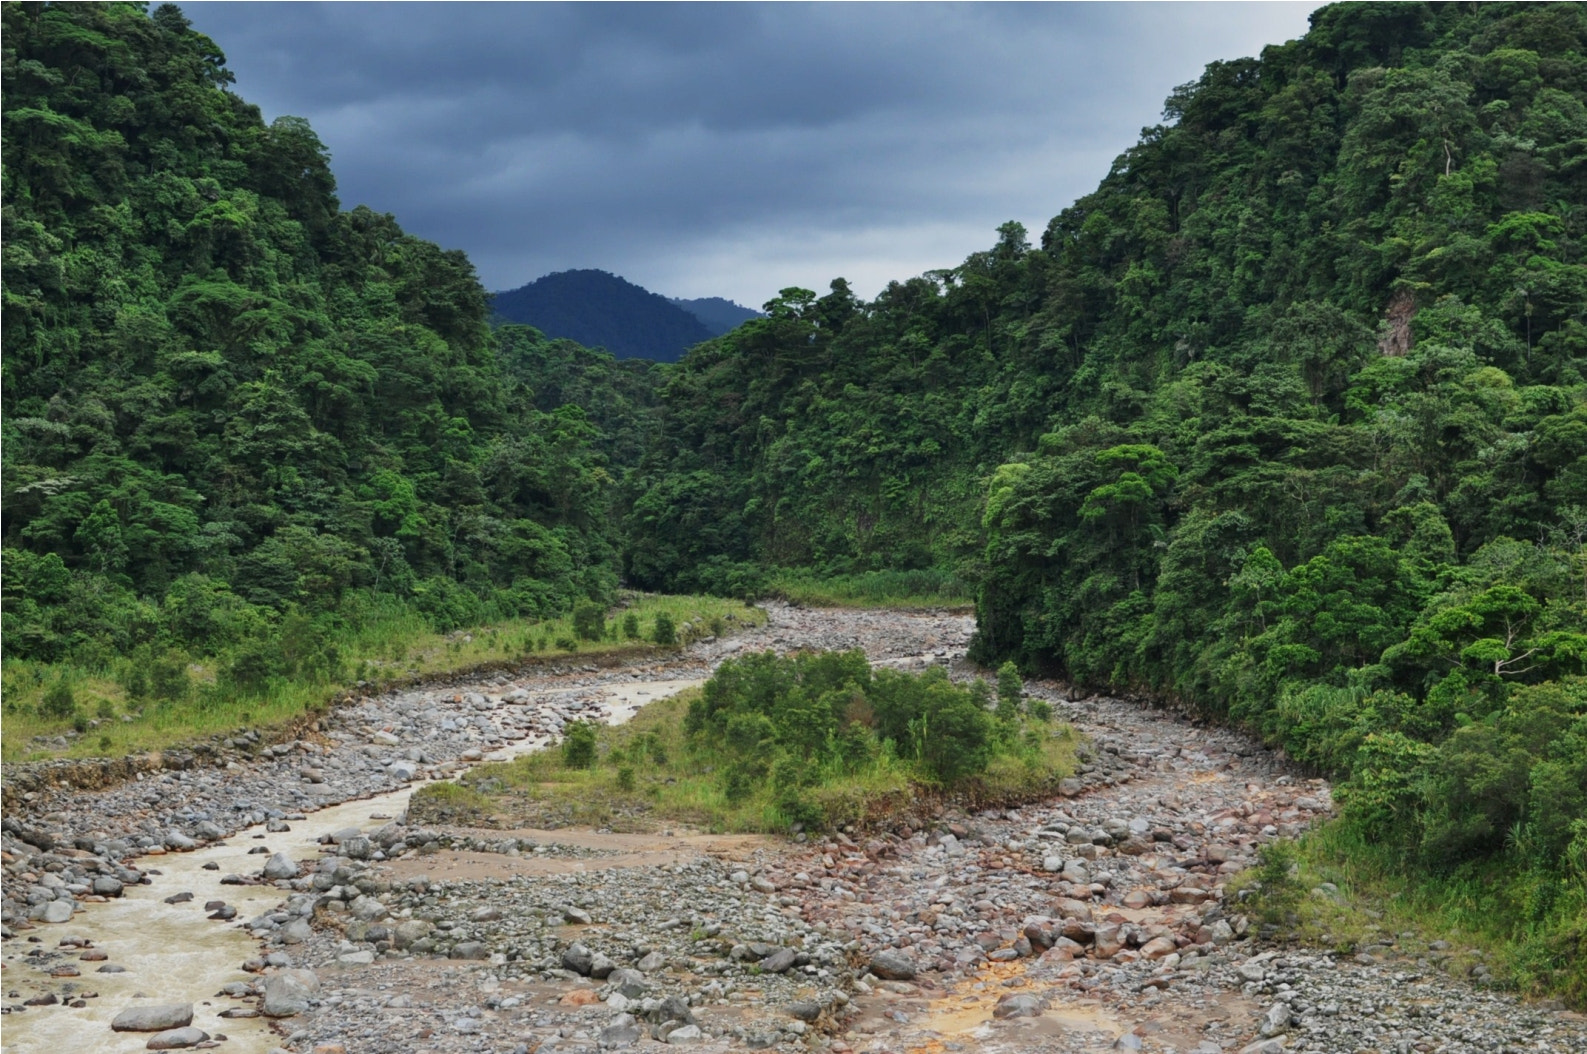 Photograph Rain Forest by Jee Say on 500px